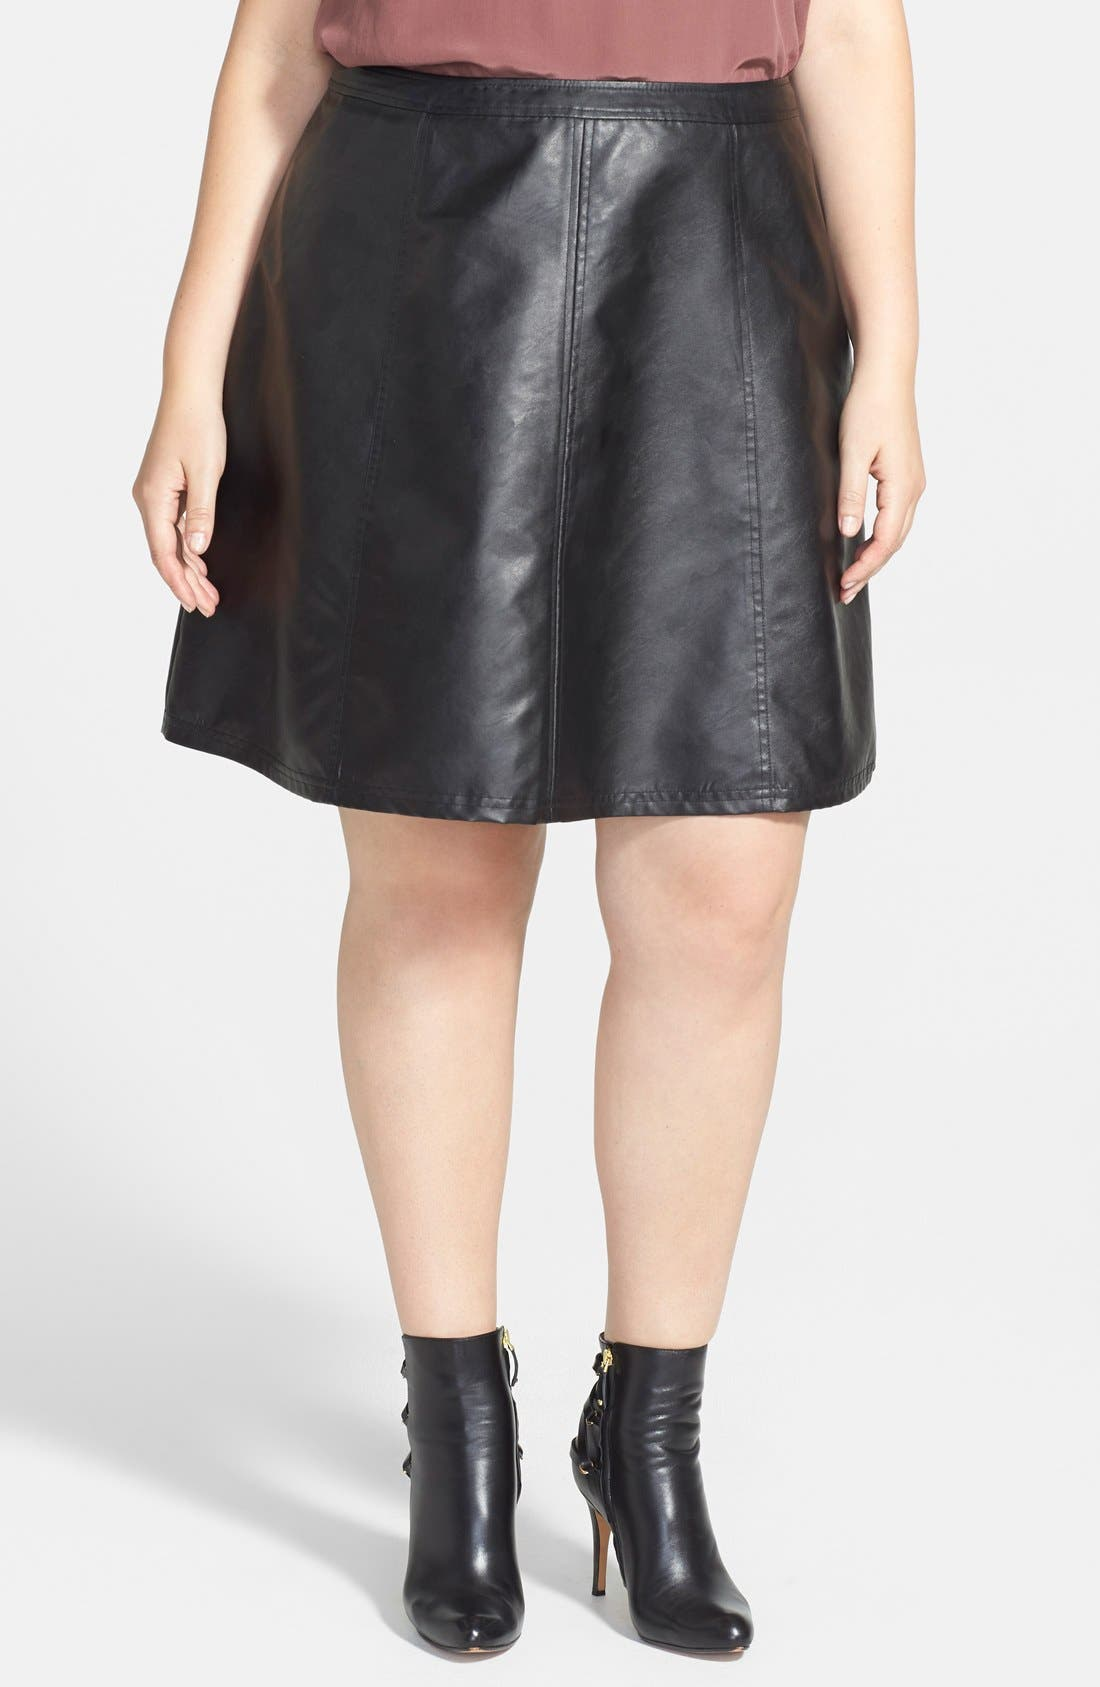 Alternate Image 1 Selected - Halogen® Faux Leather Circle Skirt (Plus Size)